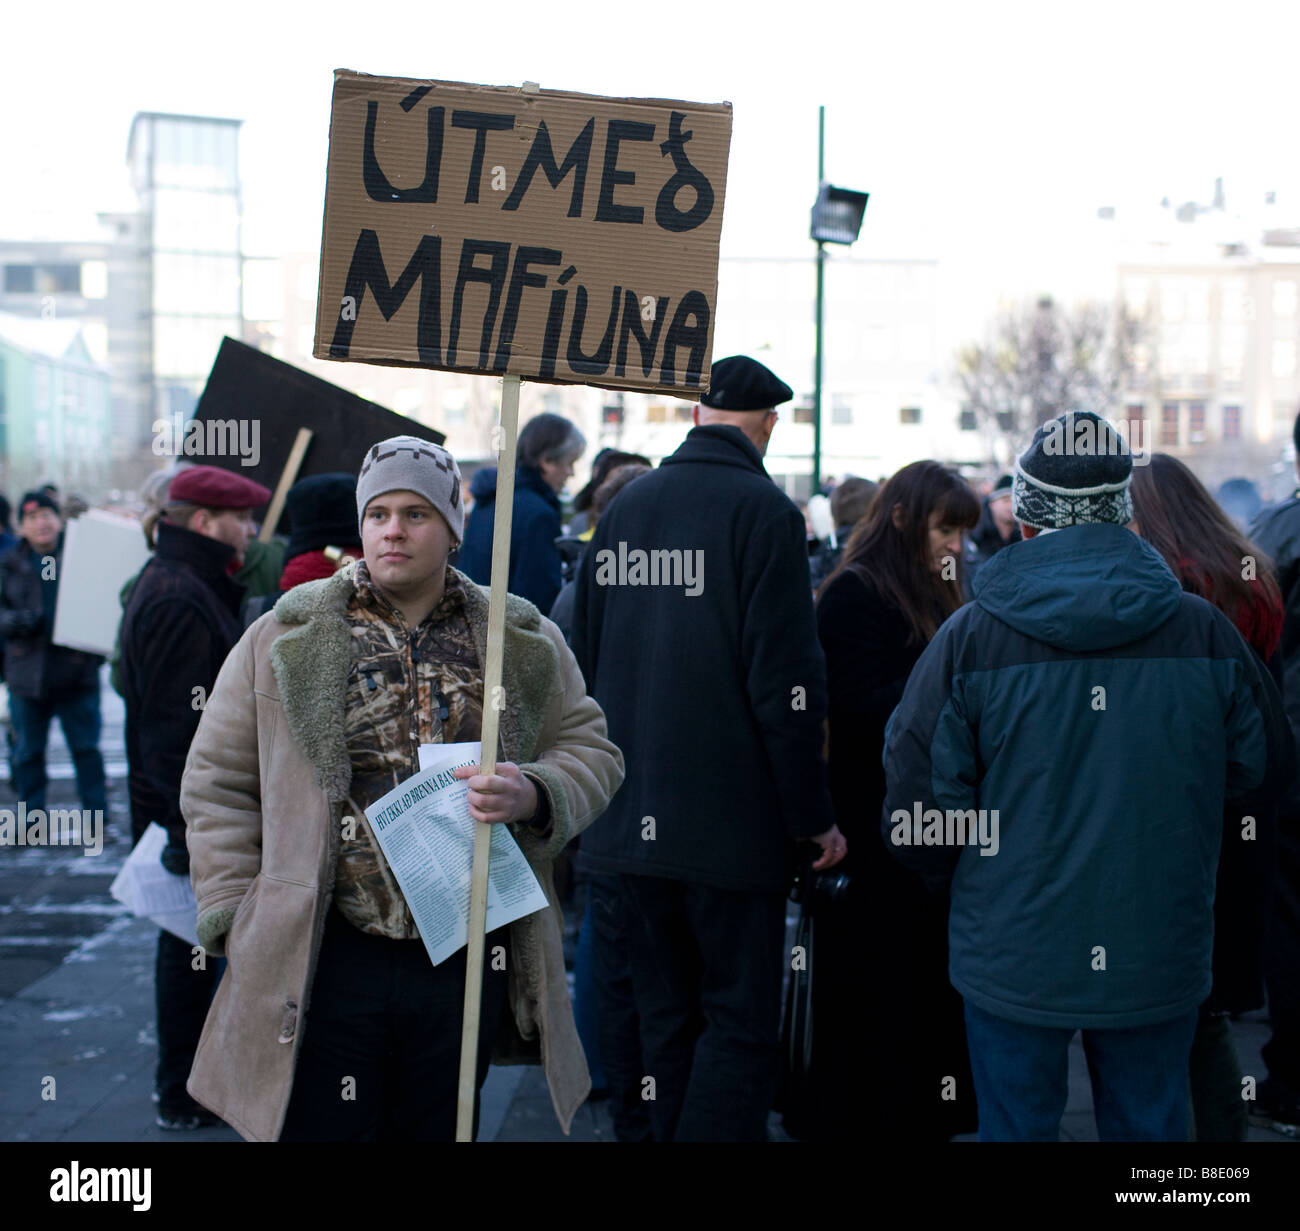 Demonstrations against banking system and Government, Reykjavik Iceland - Stock Image